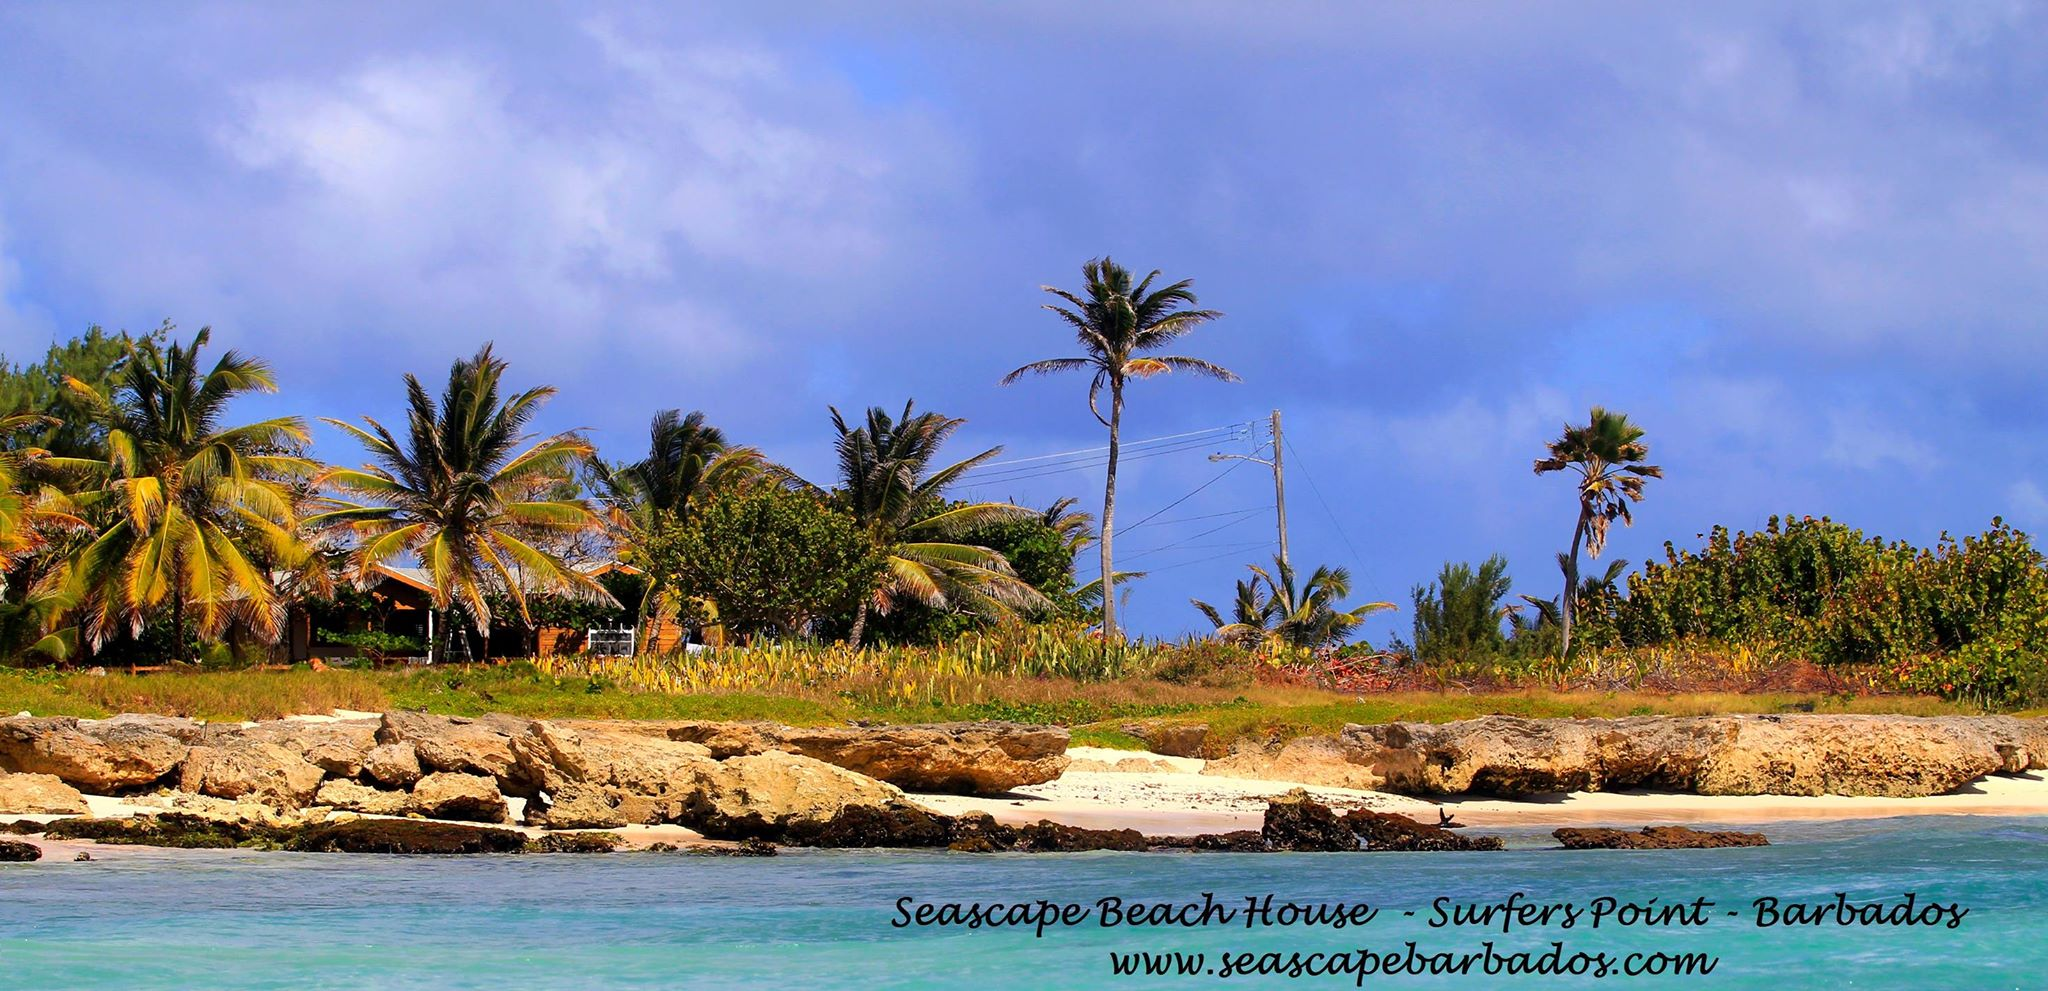 Seascape_Beachhouse_Surferspoint_Barbados